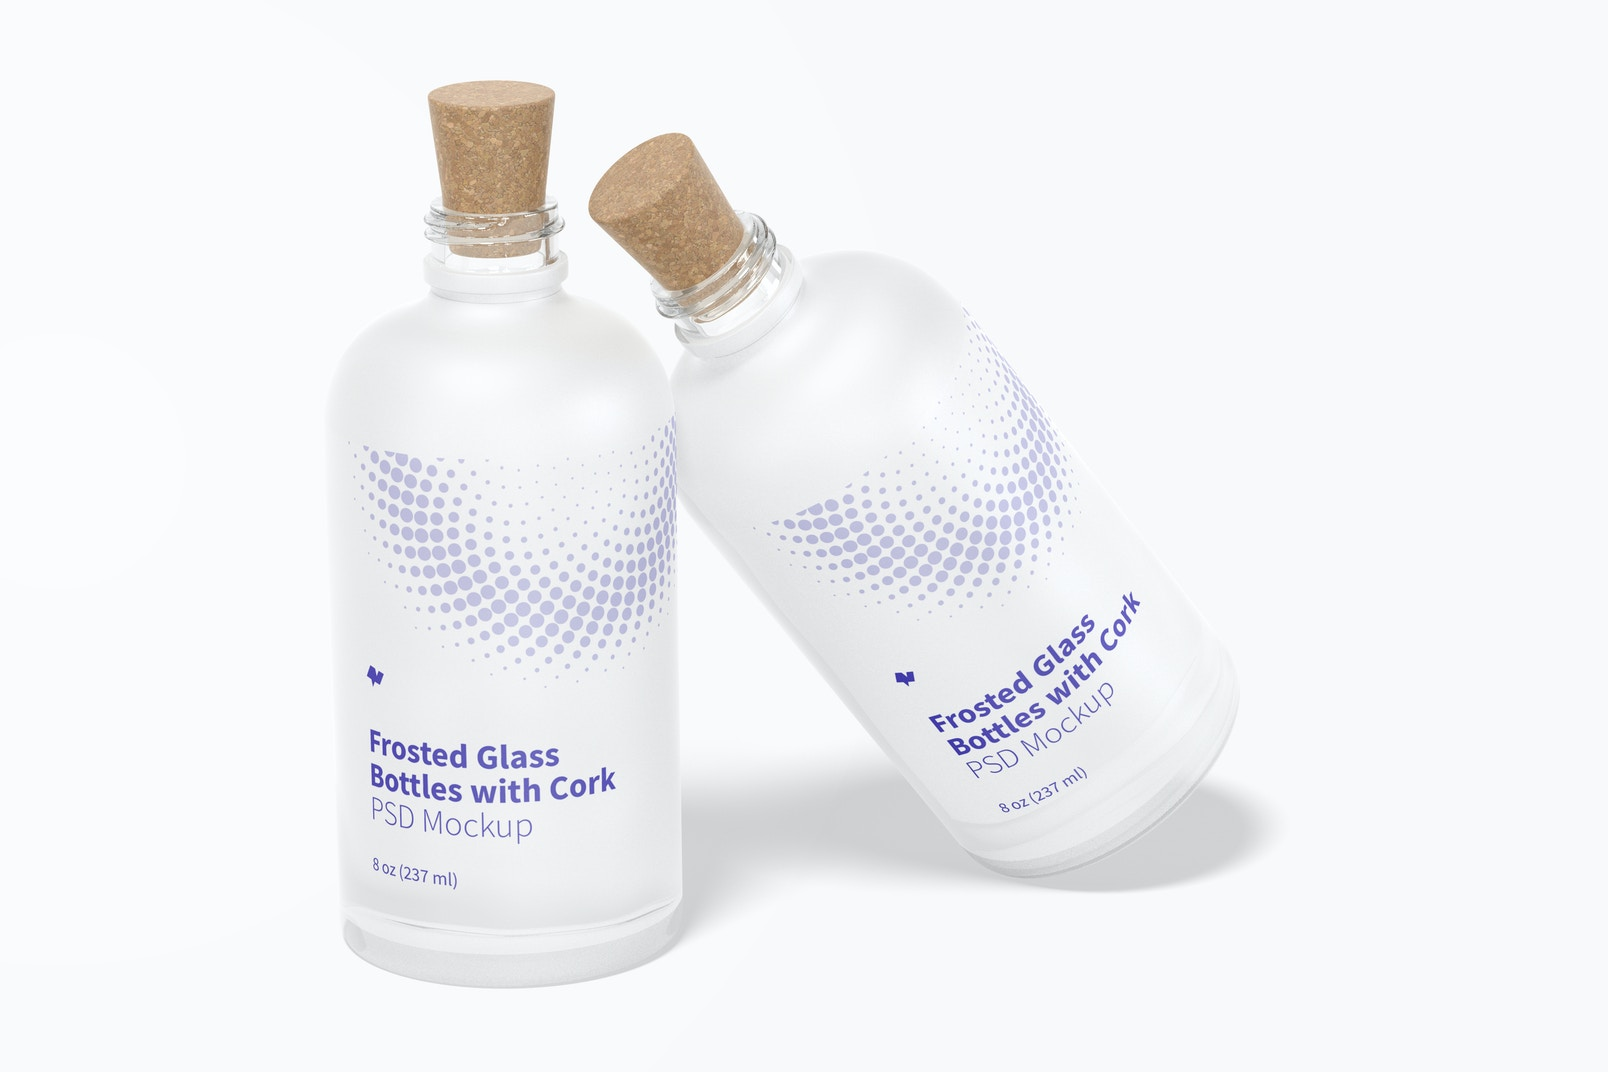 Frosted Glass Bottles with Cork Mockup